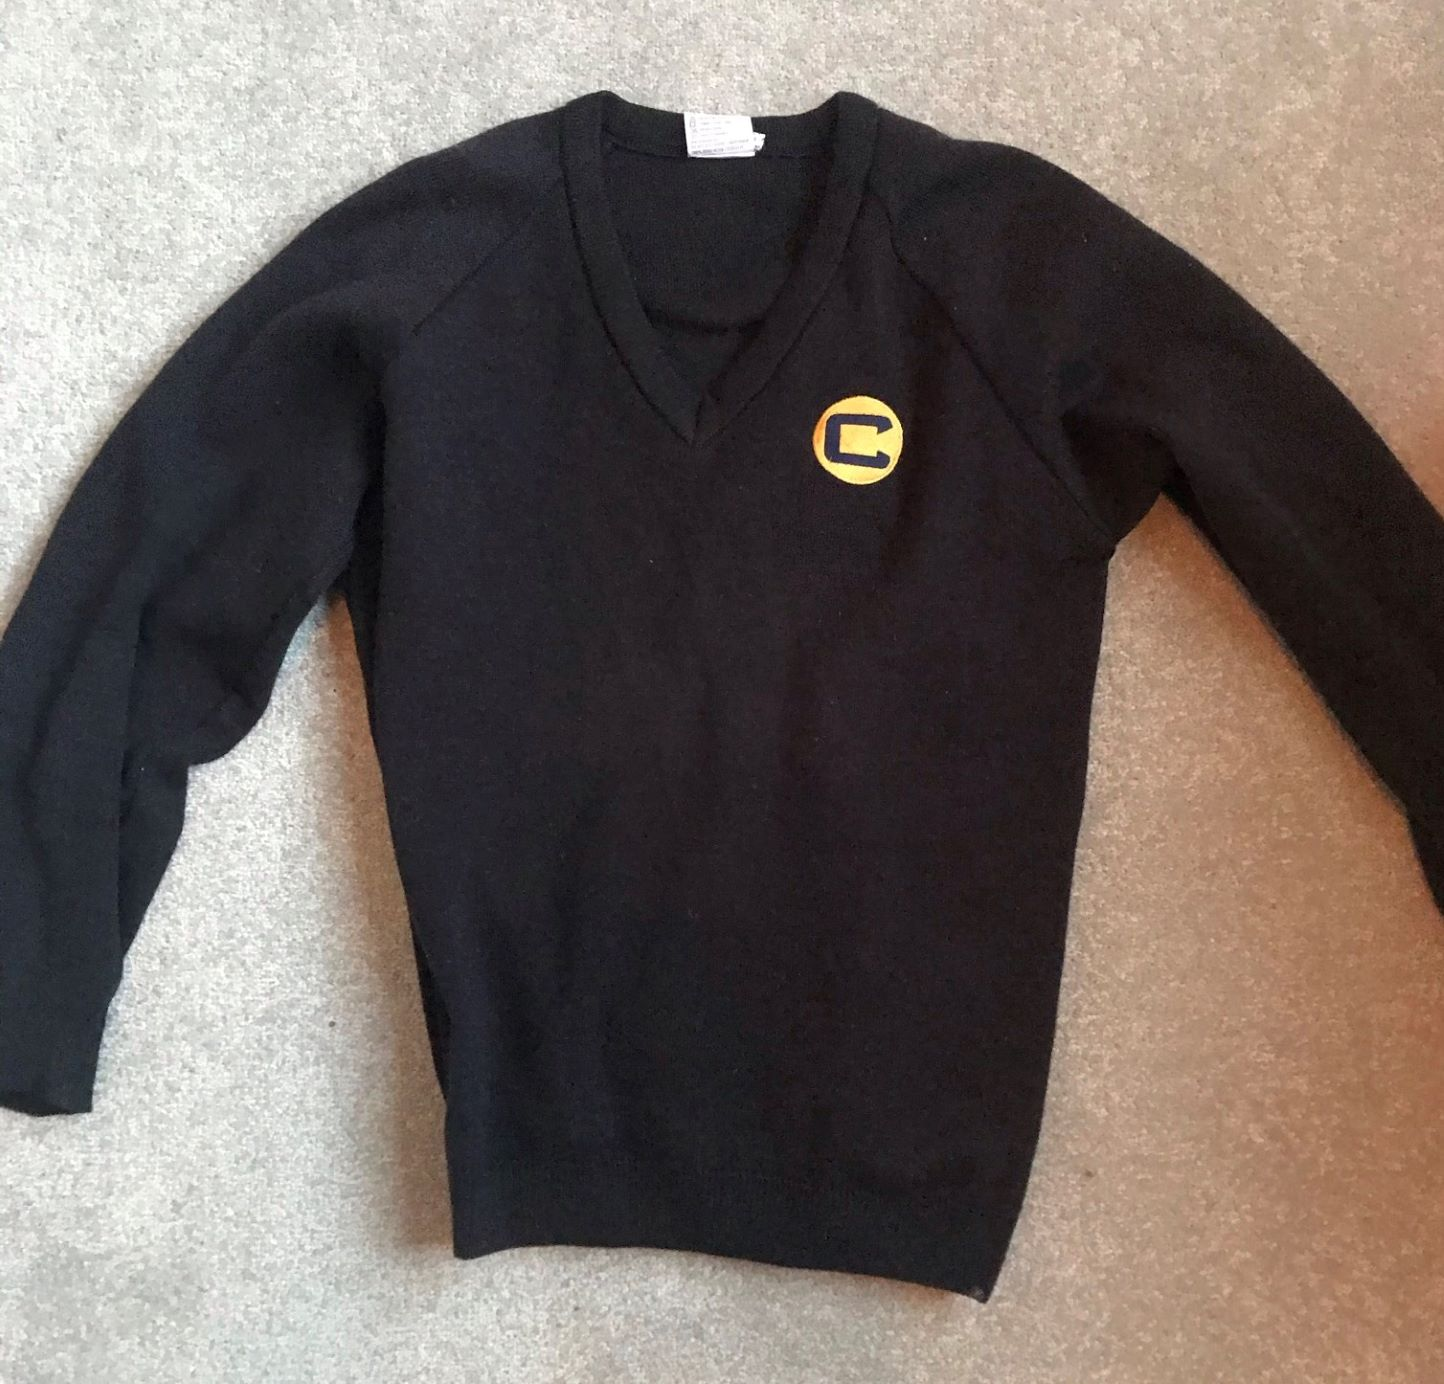 Charter North Jumper: Size 36